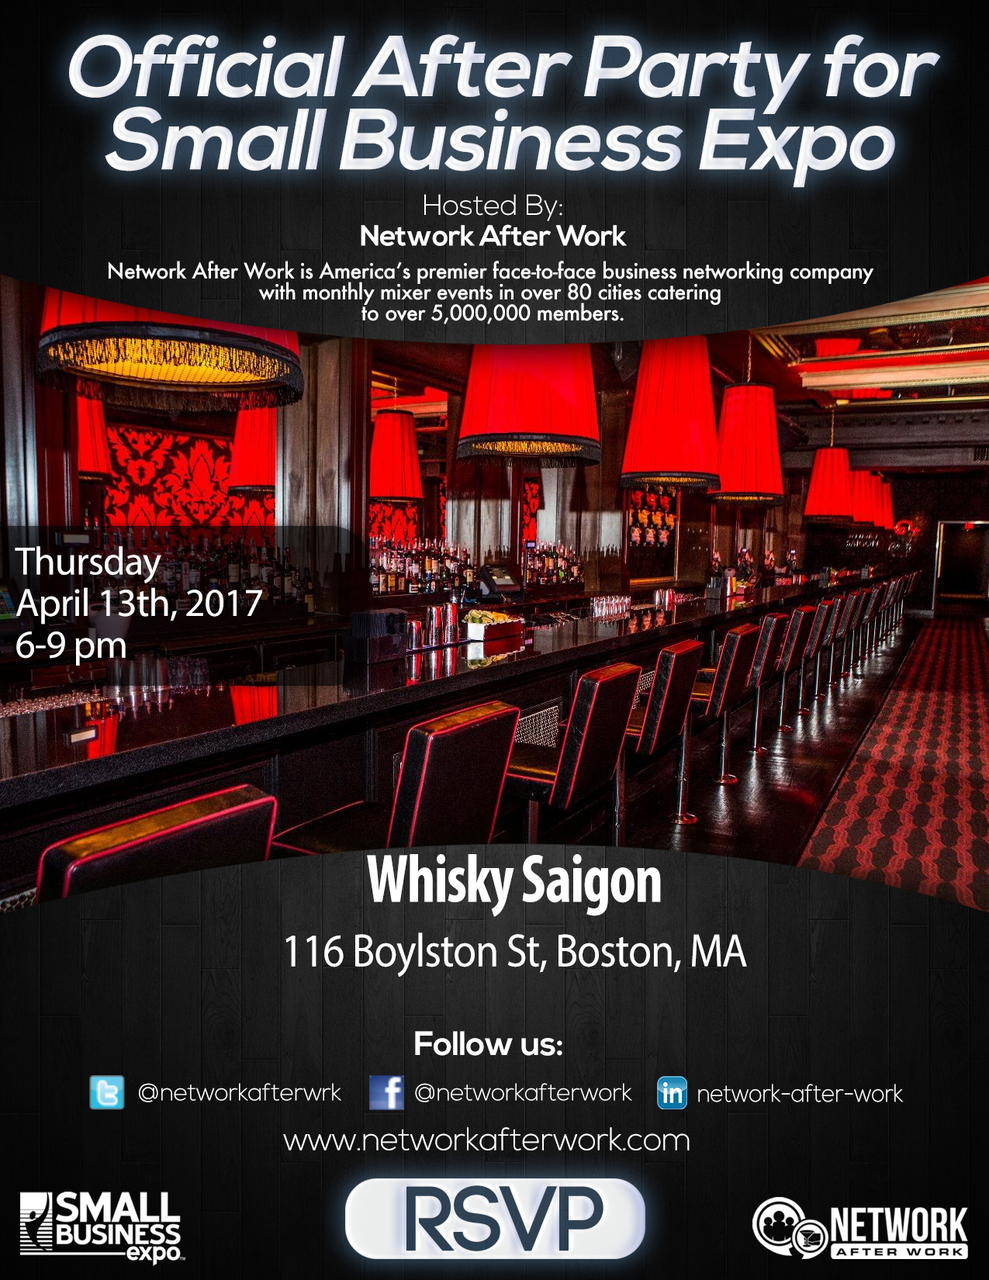 Small Business Expo - Boston 2017 Official Network After